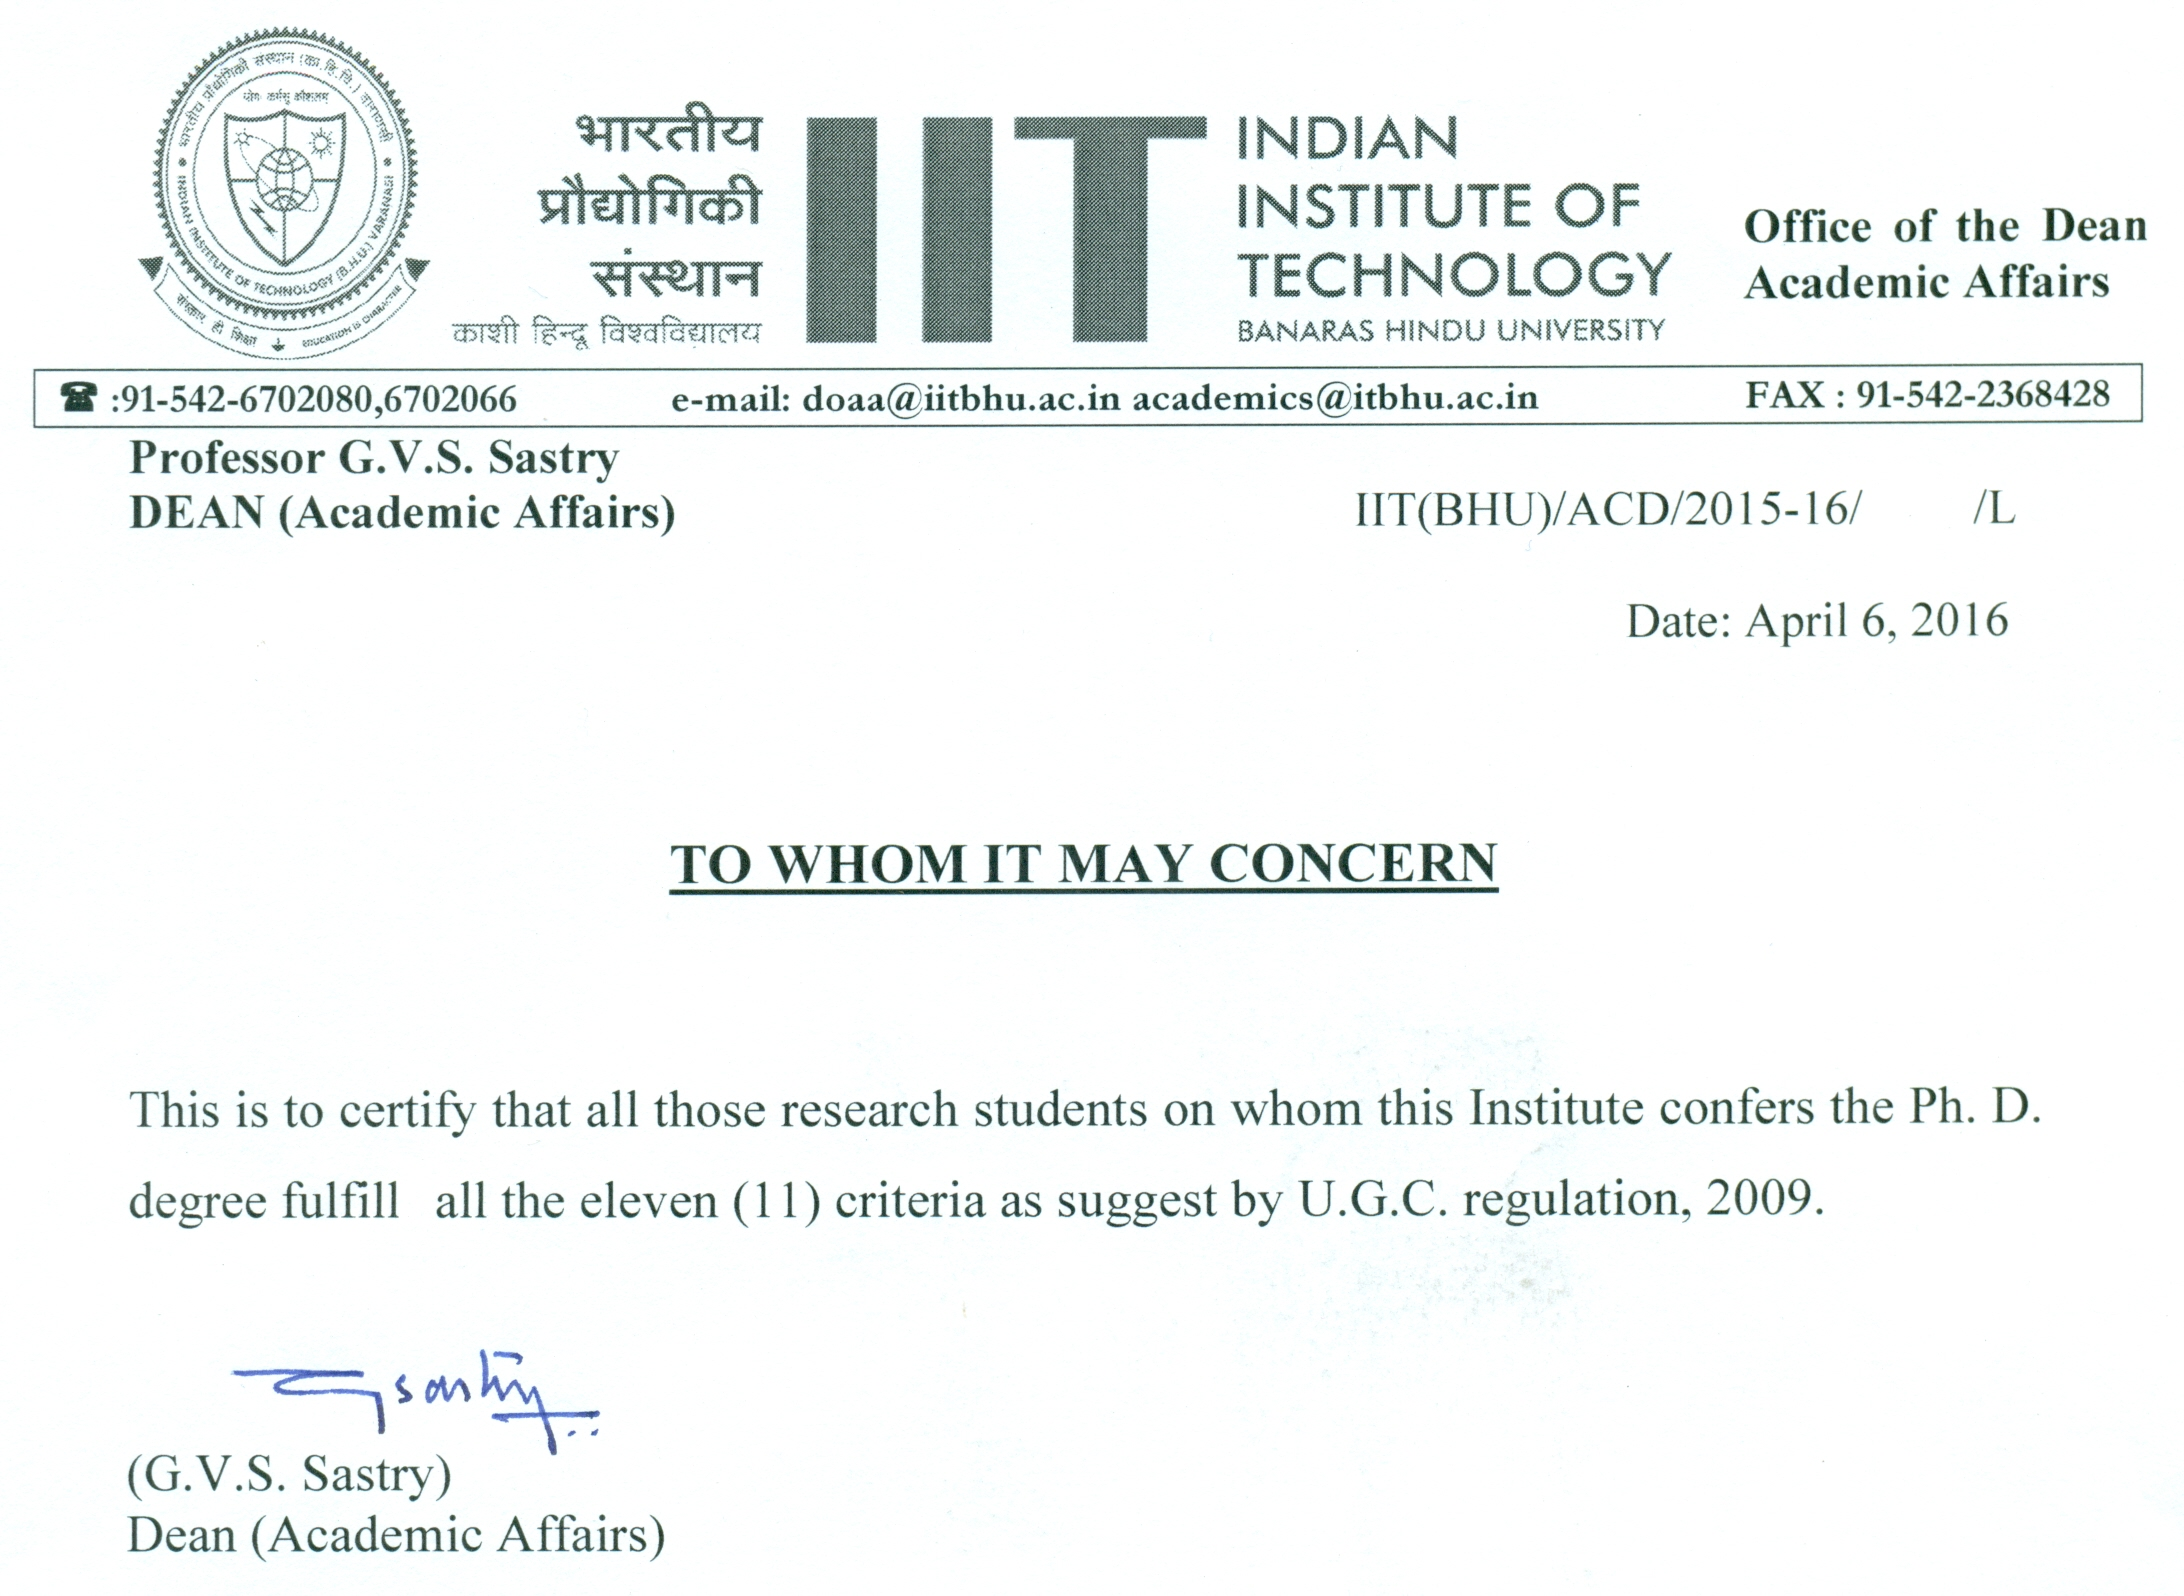 Iit bhu varanasi indian institute of technology banaras hindu latest announcements volume 3 issue 1 of the institute newsletter iitbhu connect is available now prime ministers research fellowship altavistaventures Images